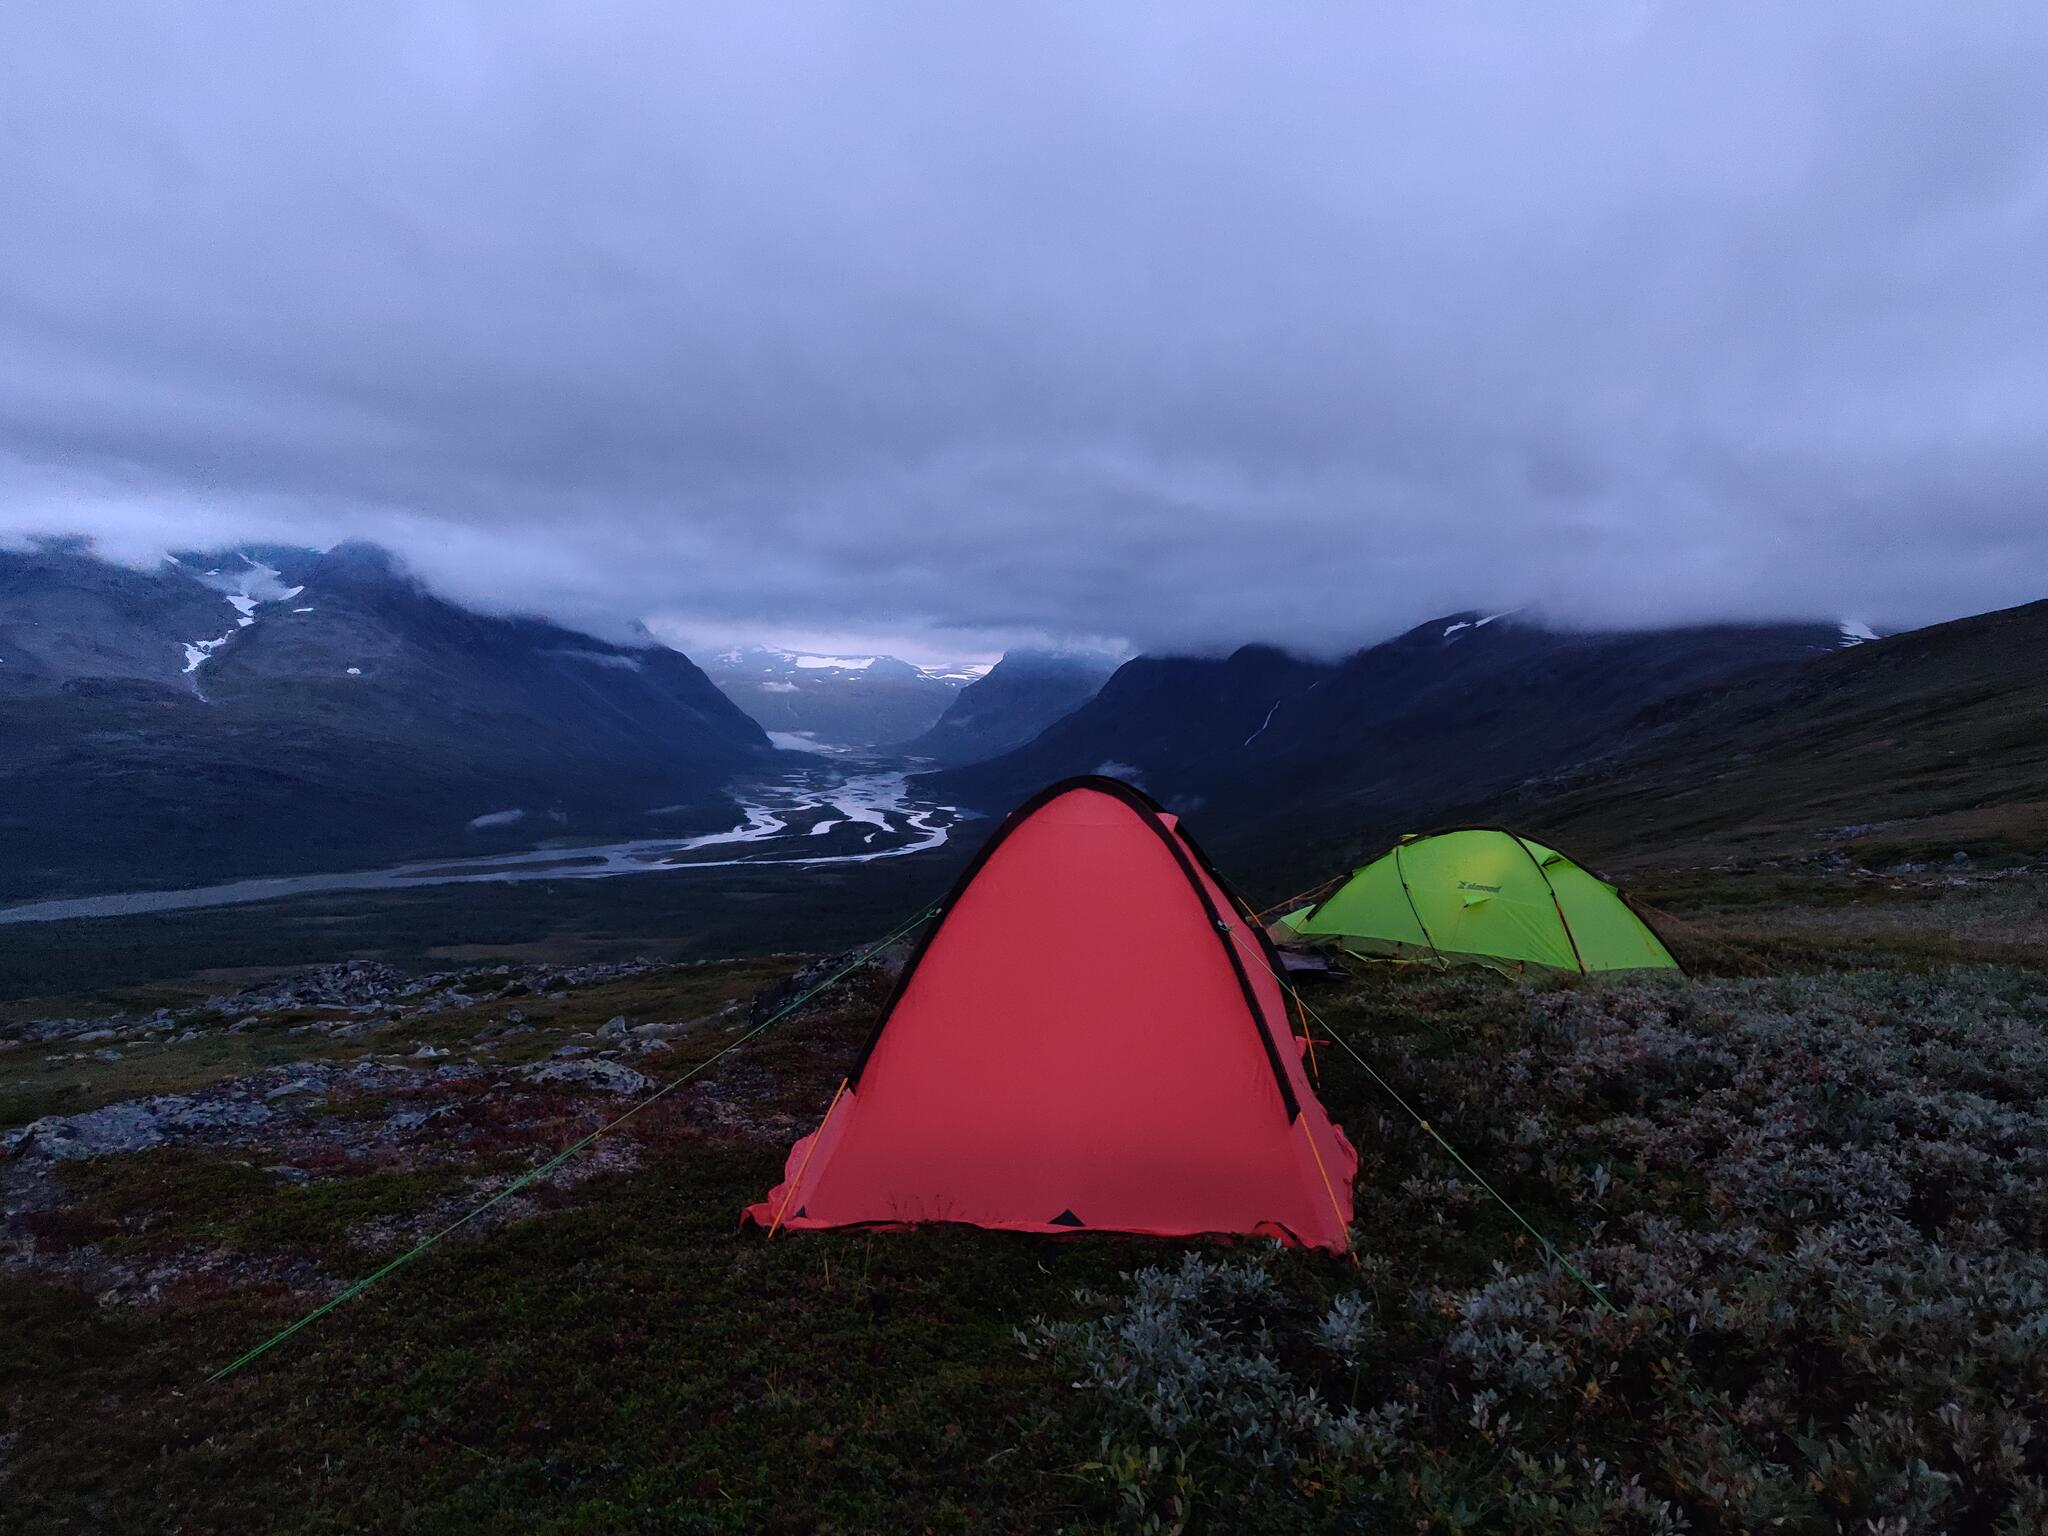 Our campsite with a view of Rapaselet.